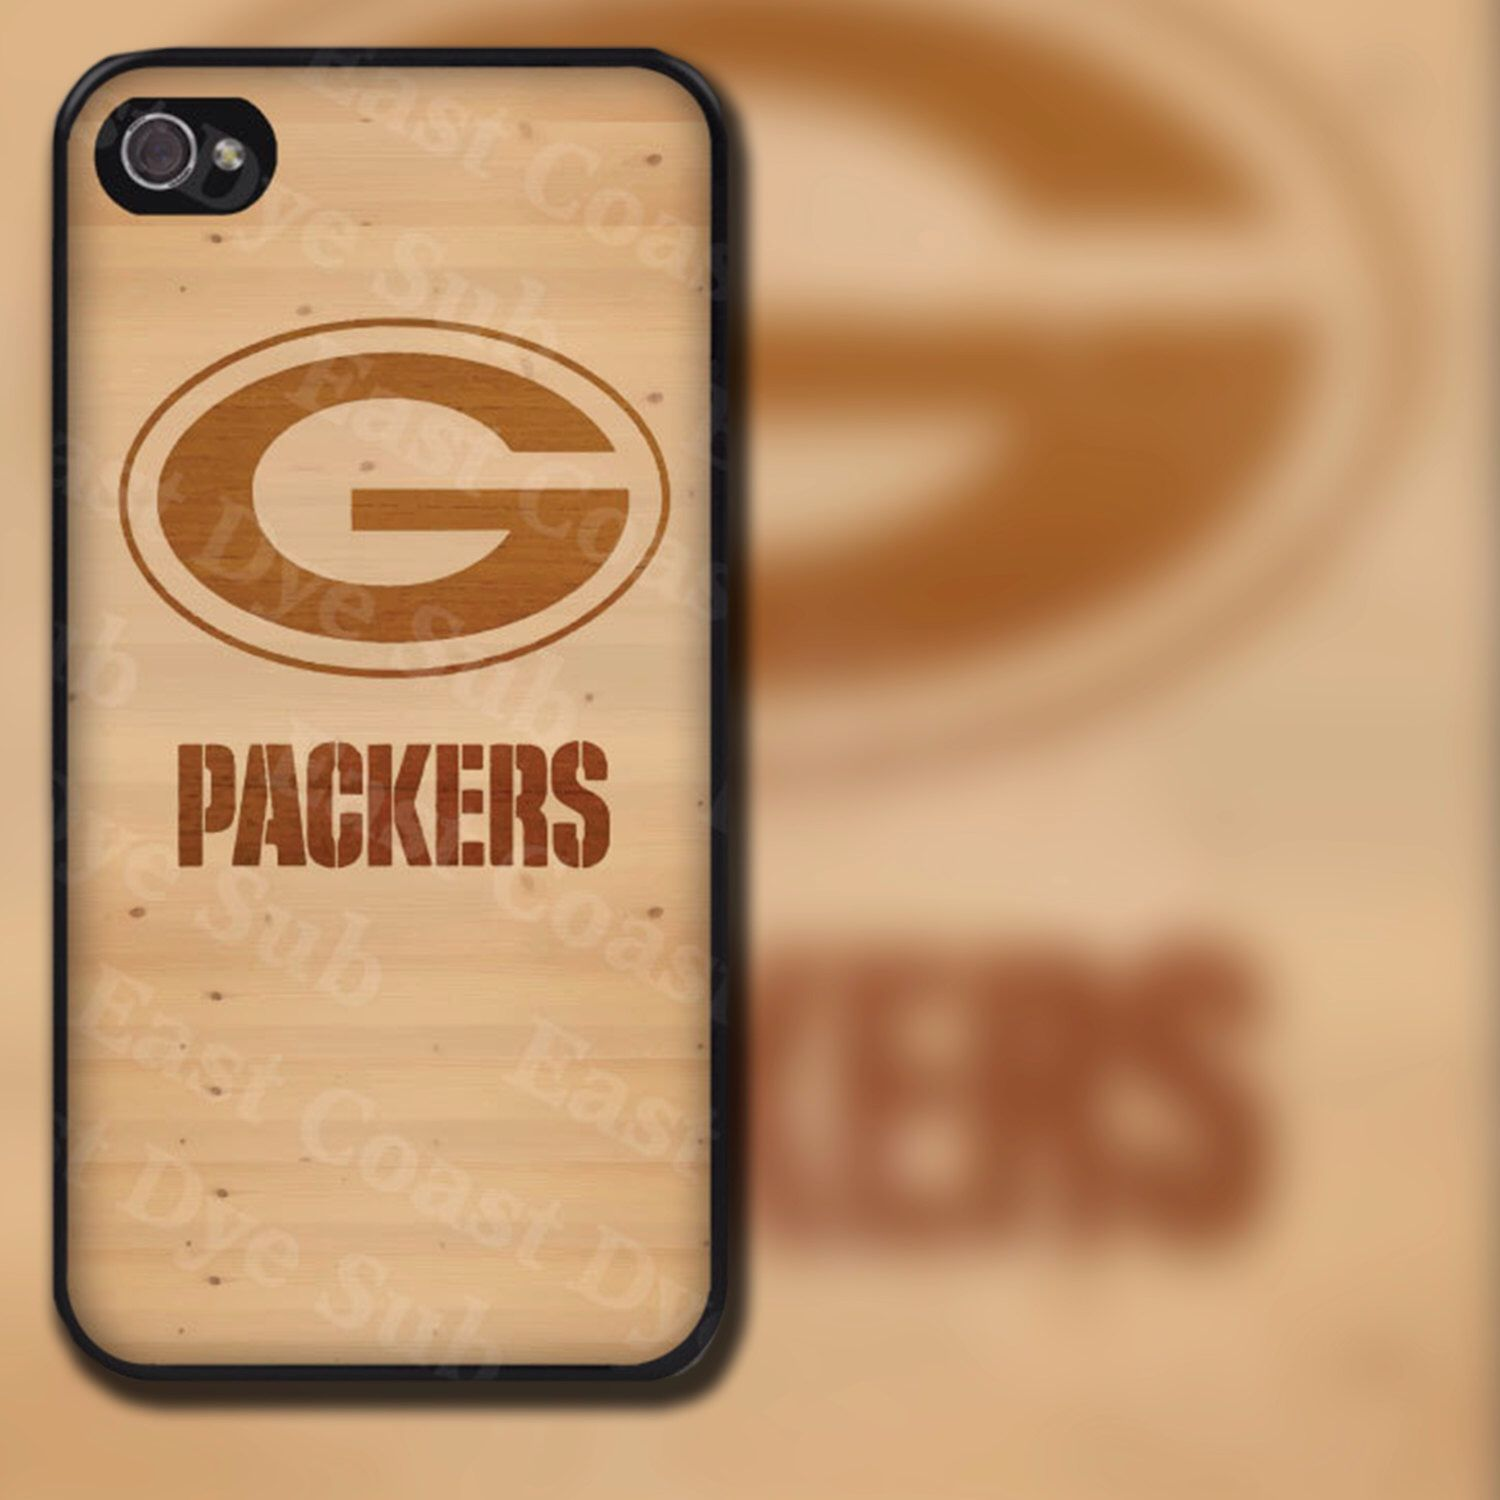 Green Bay Packers Light Wood Look Design on iPhone 4 / 4s / 5 / 5s / 5c / 6 / 6 Plus Rubber Silicone Case by EastCoastDyeSub on Etsy https://www.etsy.com/listing/129768053/green-bay-packers-light-wood-look-design